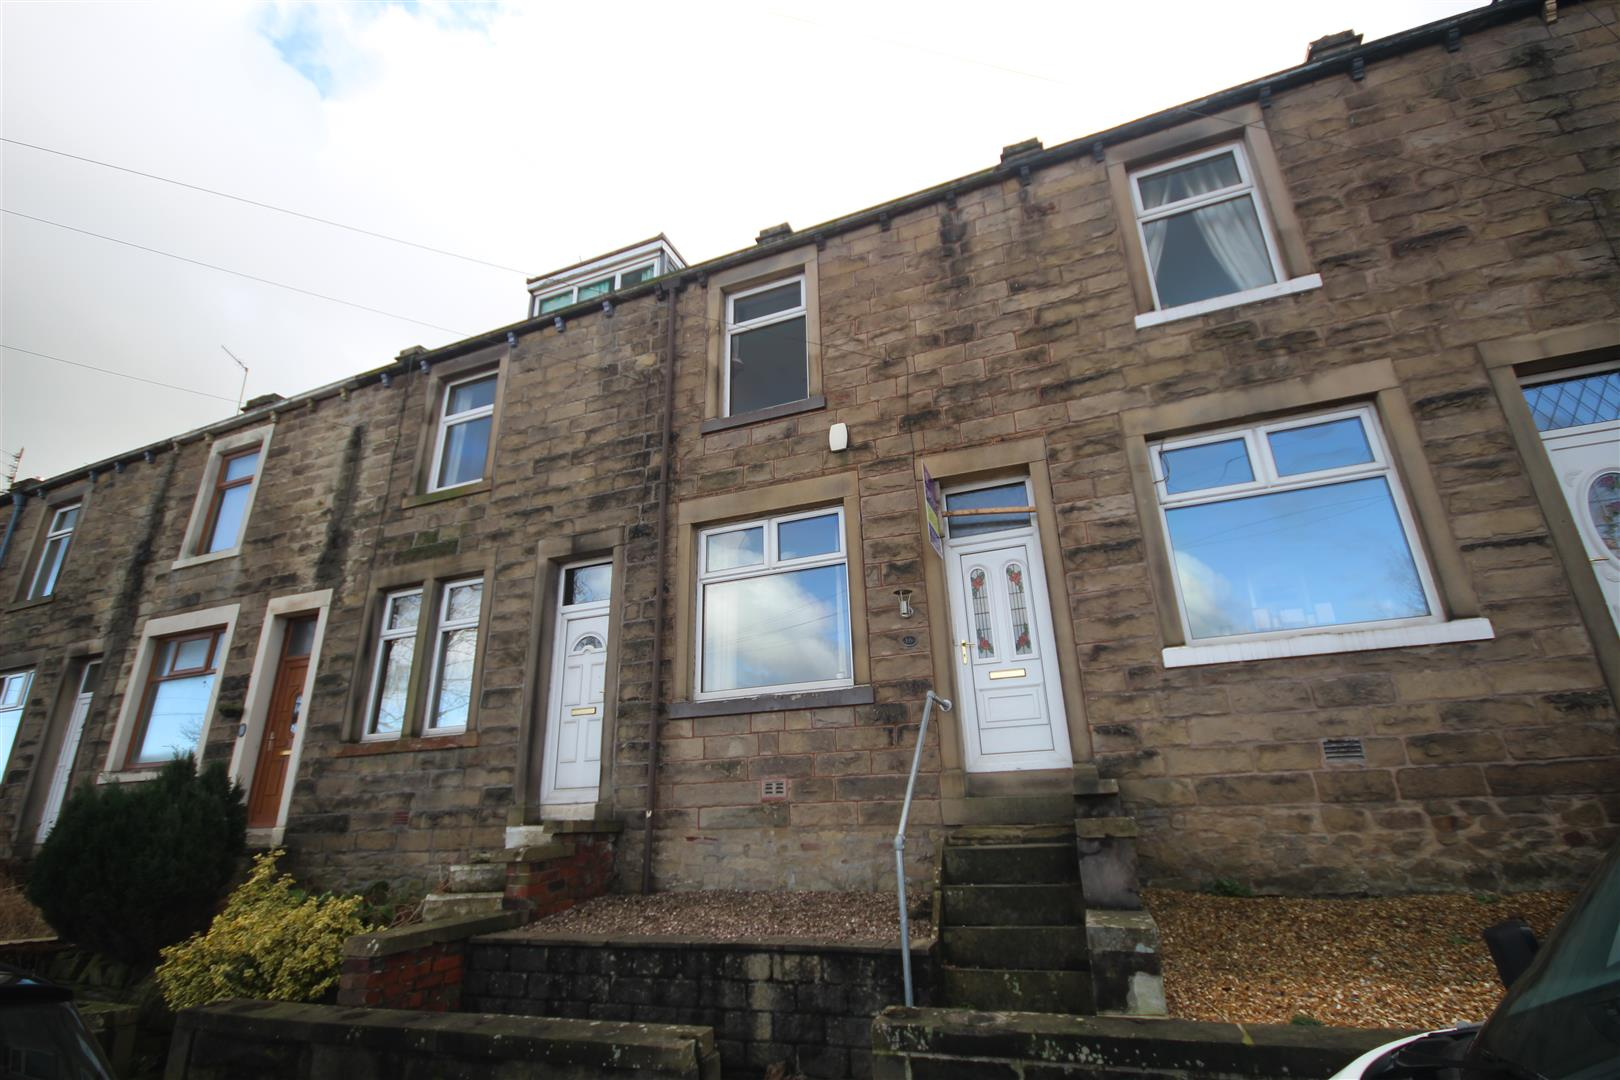 3 bedroom mid terrace house To Let in Barnoldswick - 2016-02-03 13.35.09.jpg